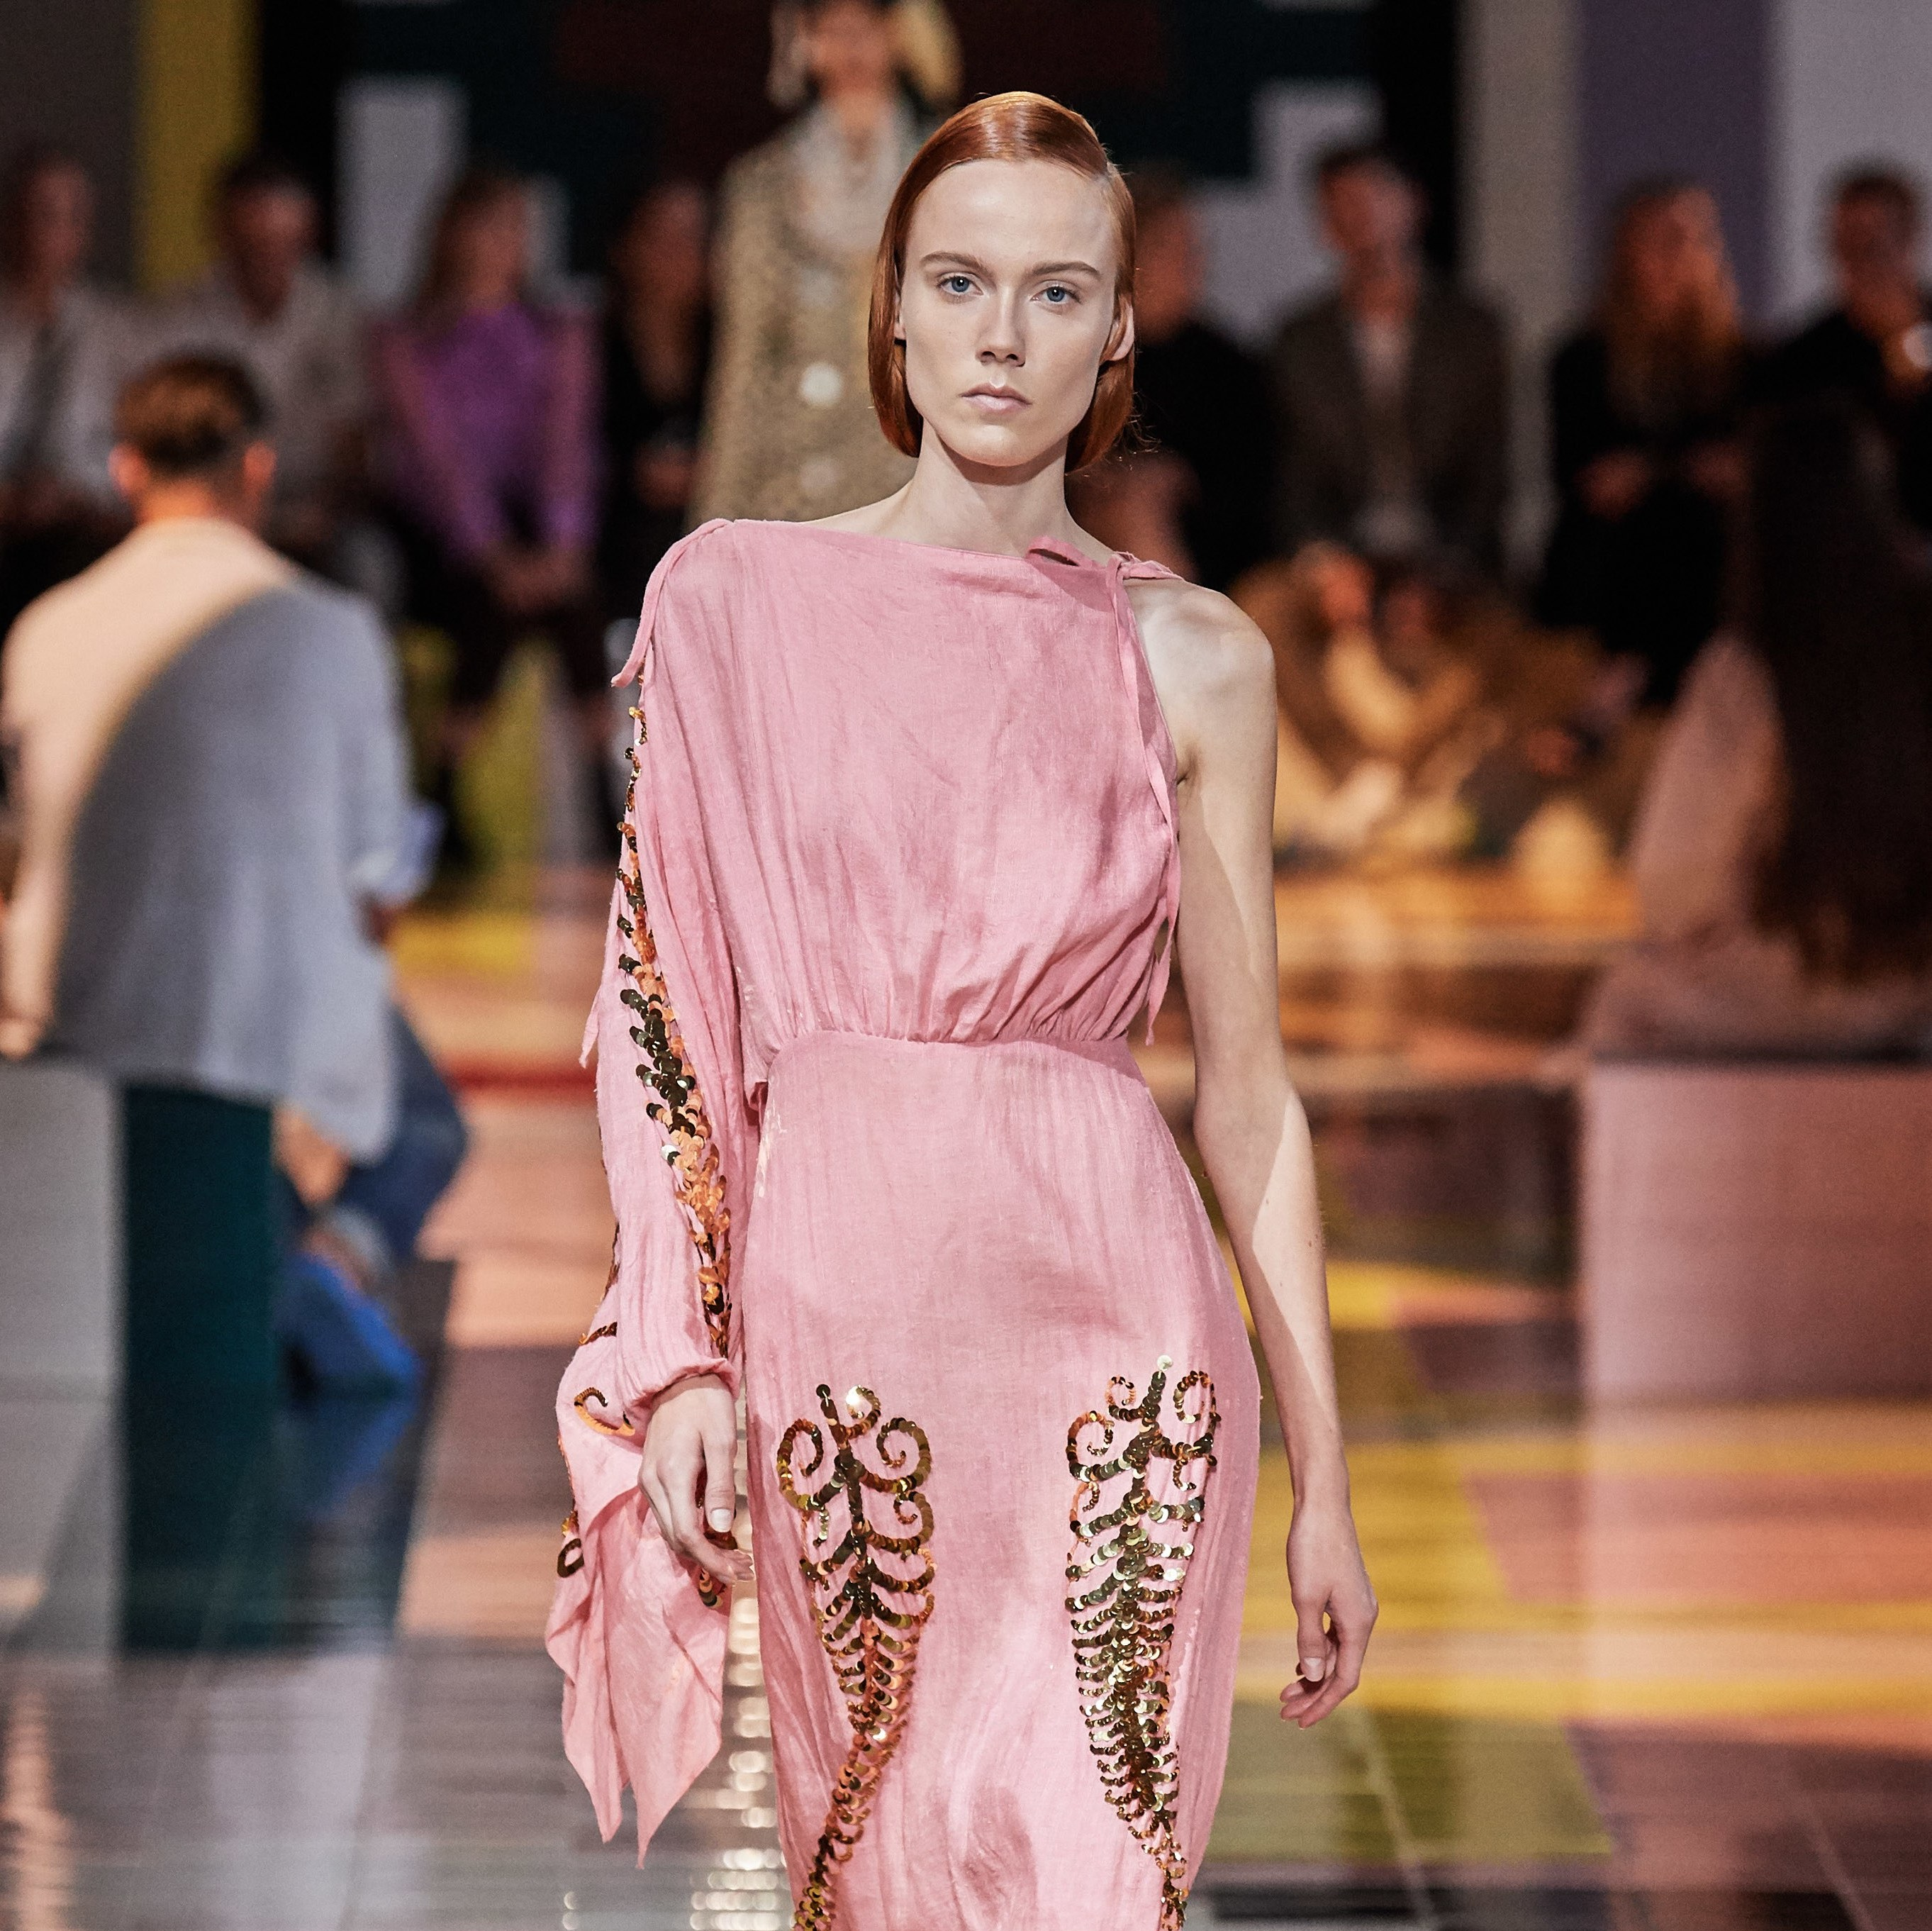 PRADA SPRING/SUMMER 2020 – GAZING INTO THE HORIZONS OF THE FUTURE